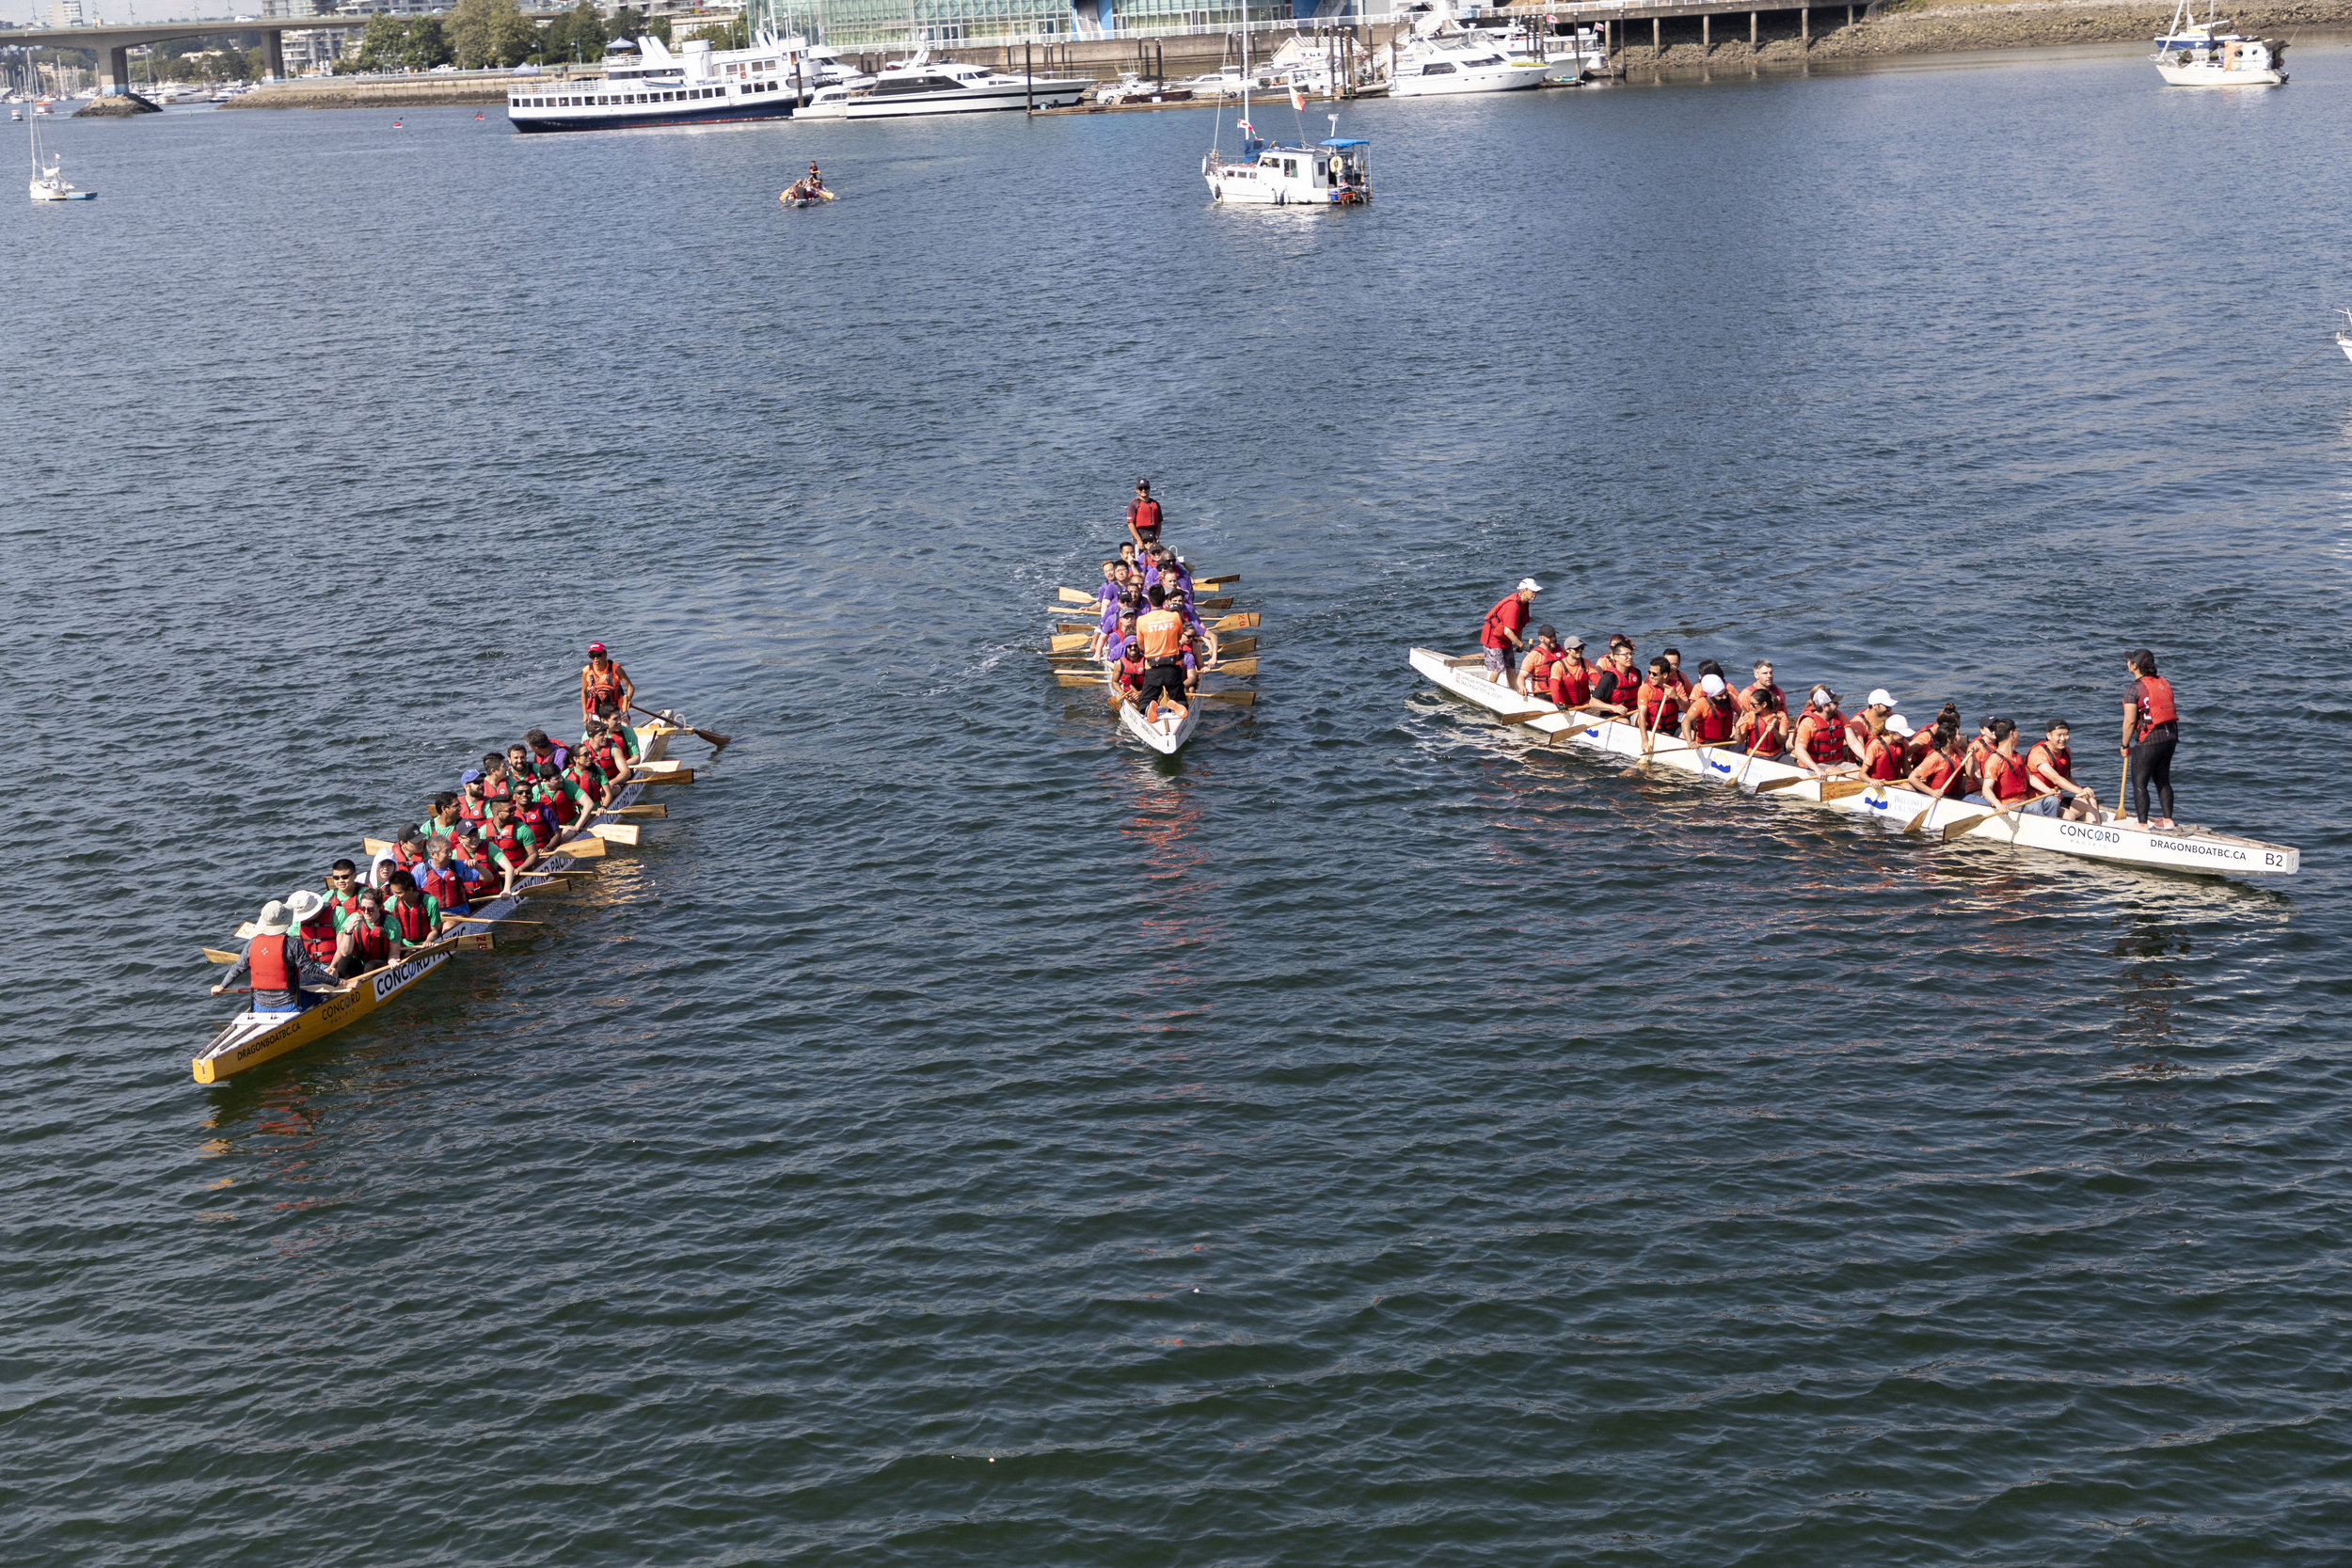 The boat crews meet in the water.